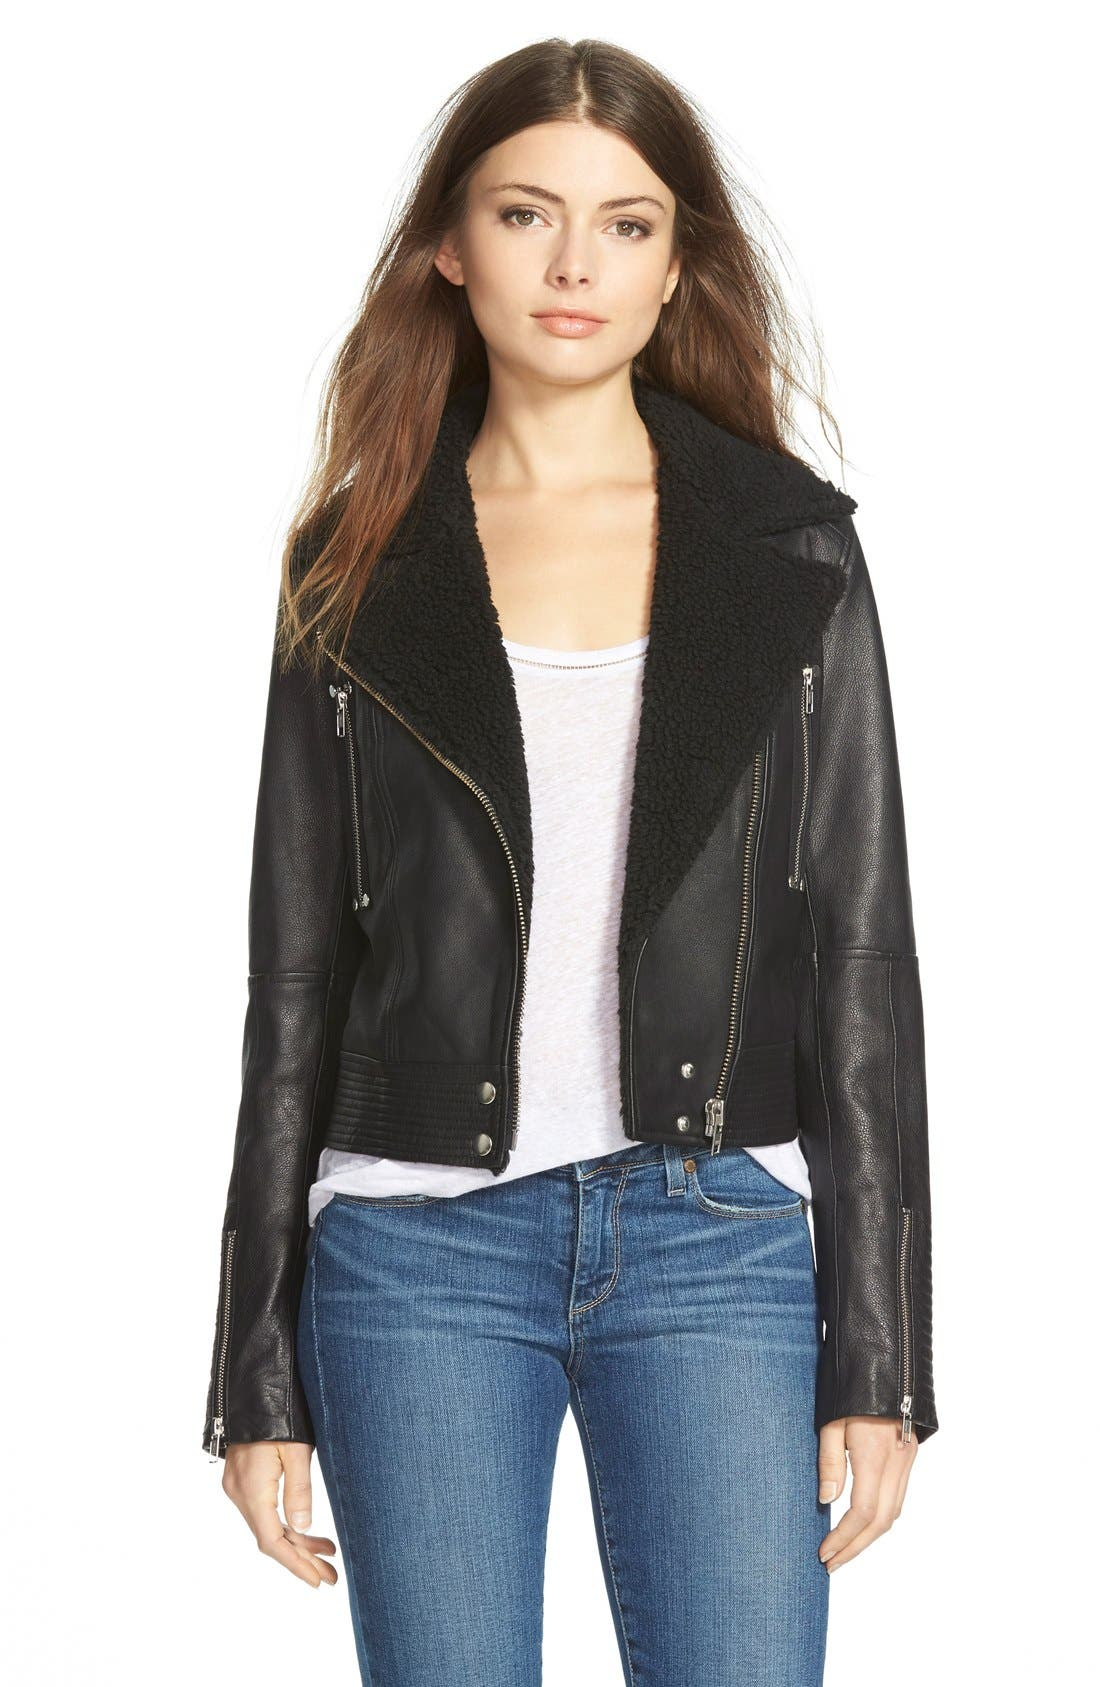 Denim 'Rooney' Leather Jacket with Faux Shearling Collar,                             Main thumbnail 1, color,                             001